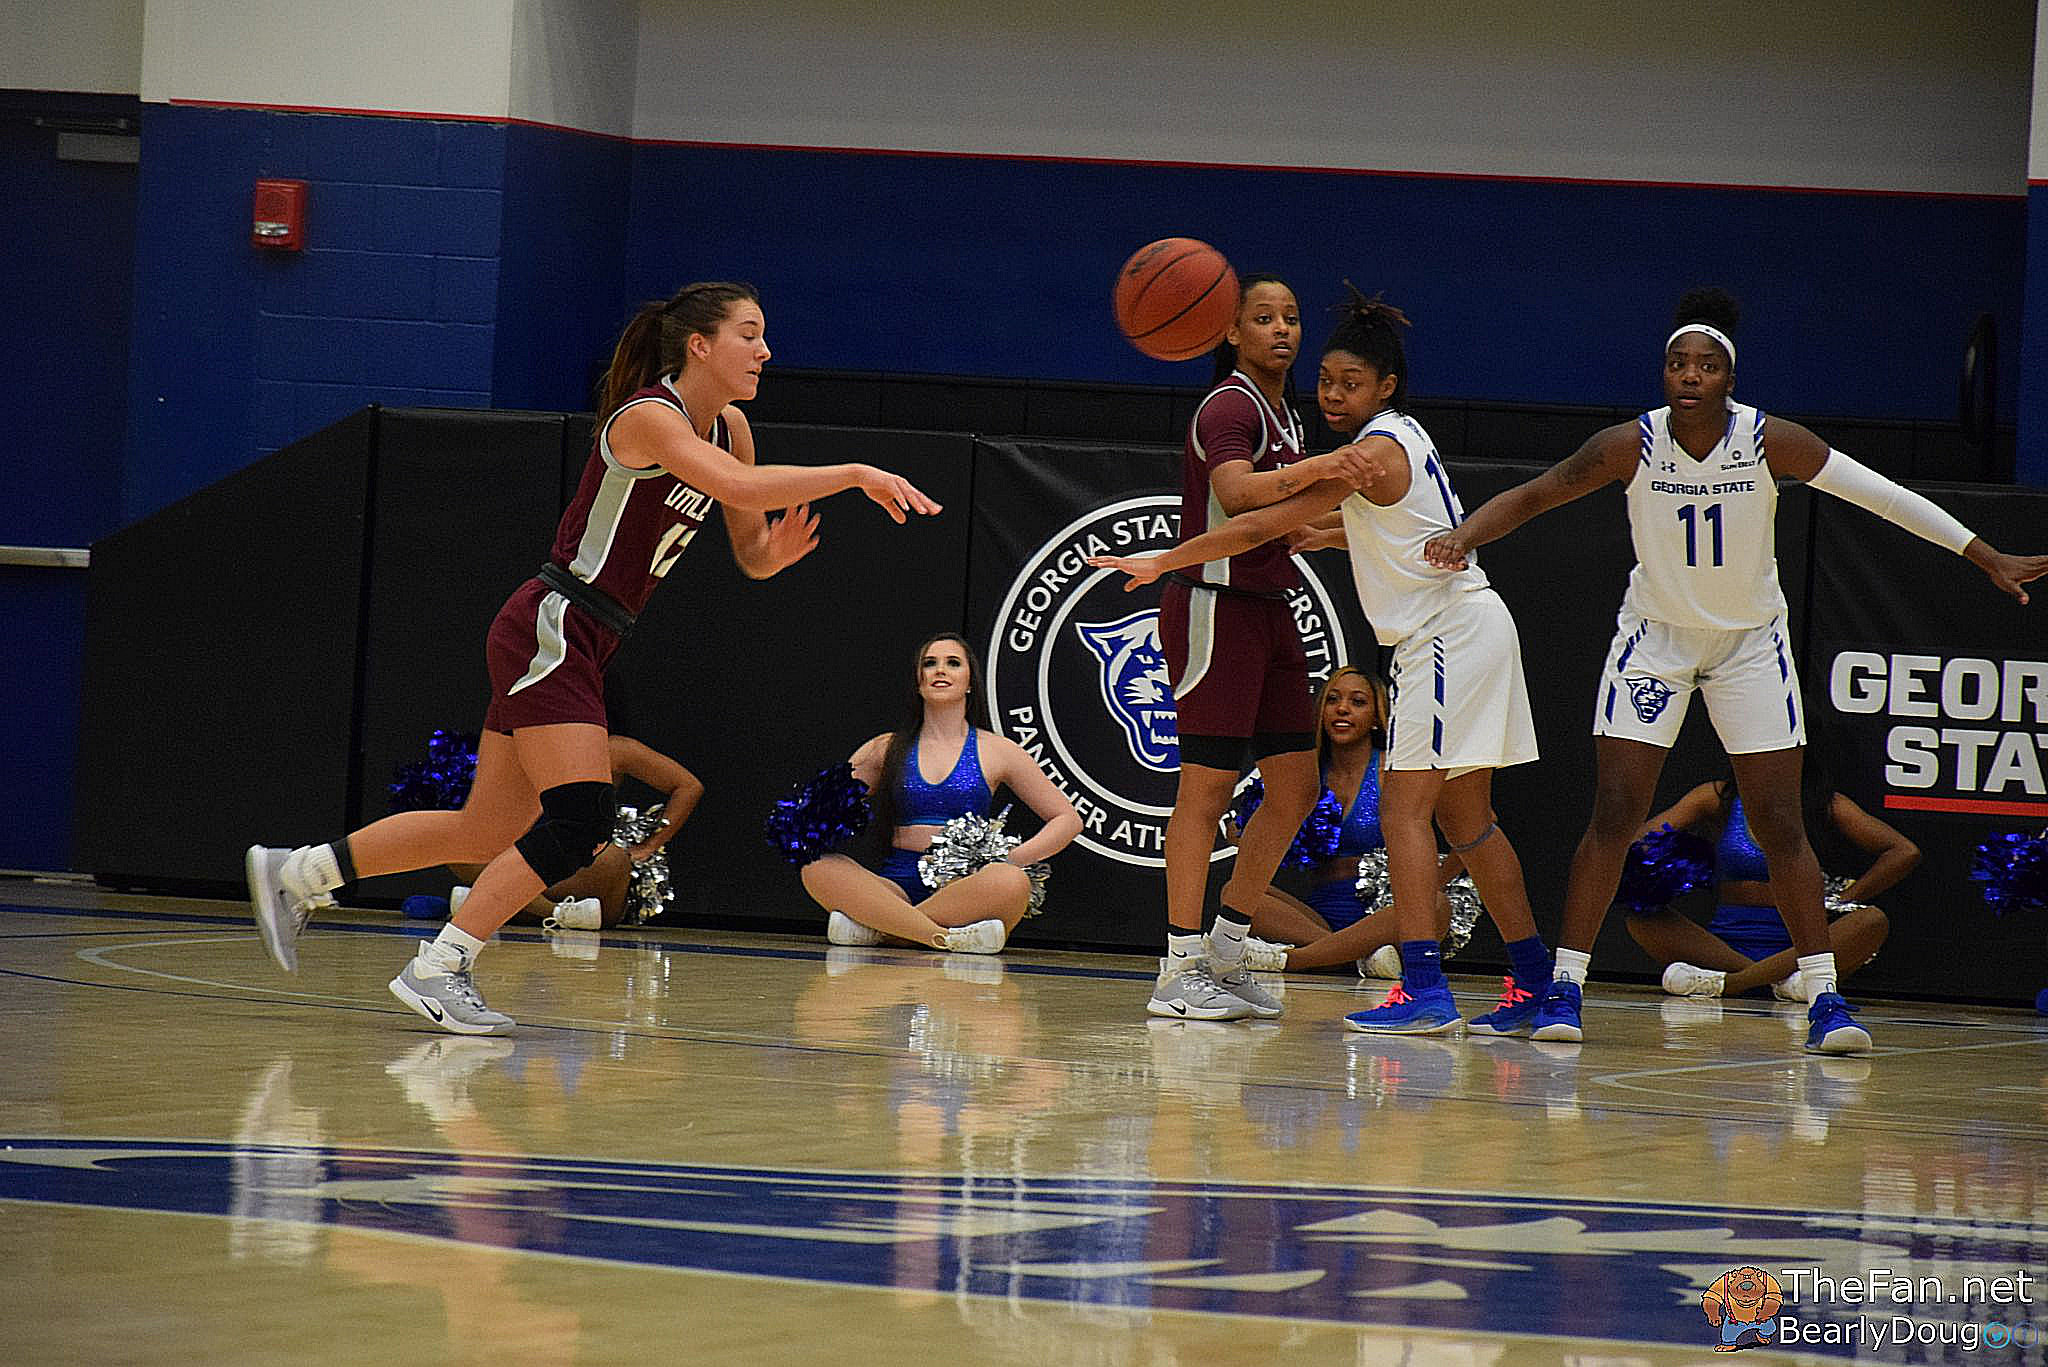 2019-20 WBB Game Photos – Little Rock Trojans at Georgia State Panthers